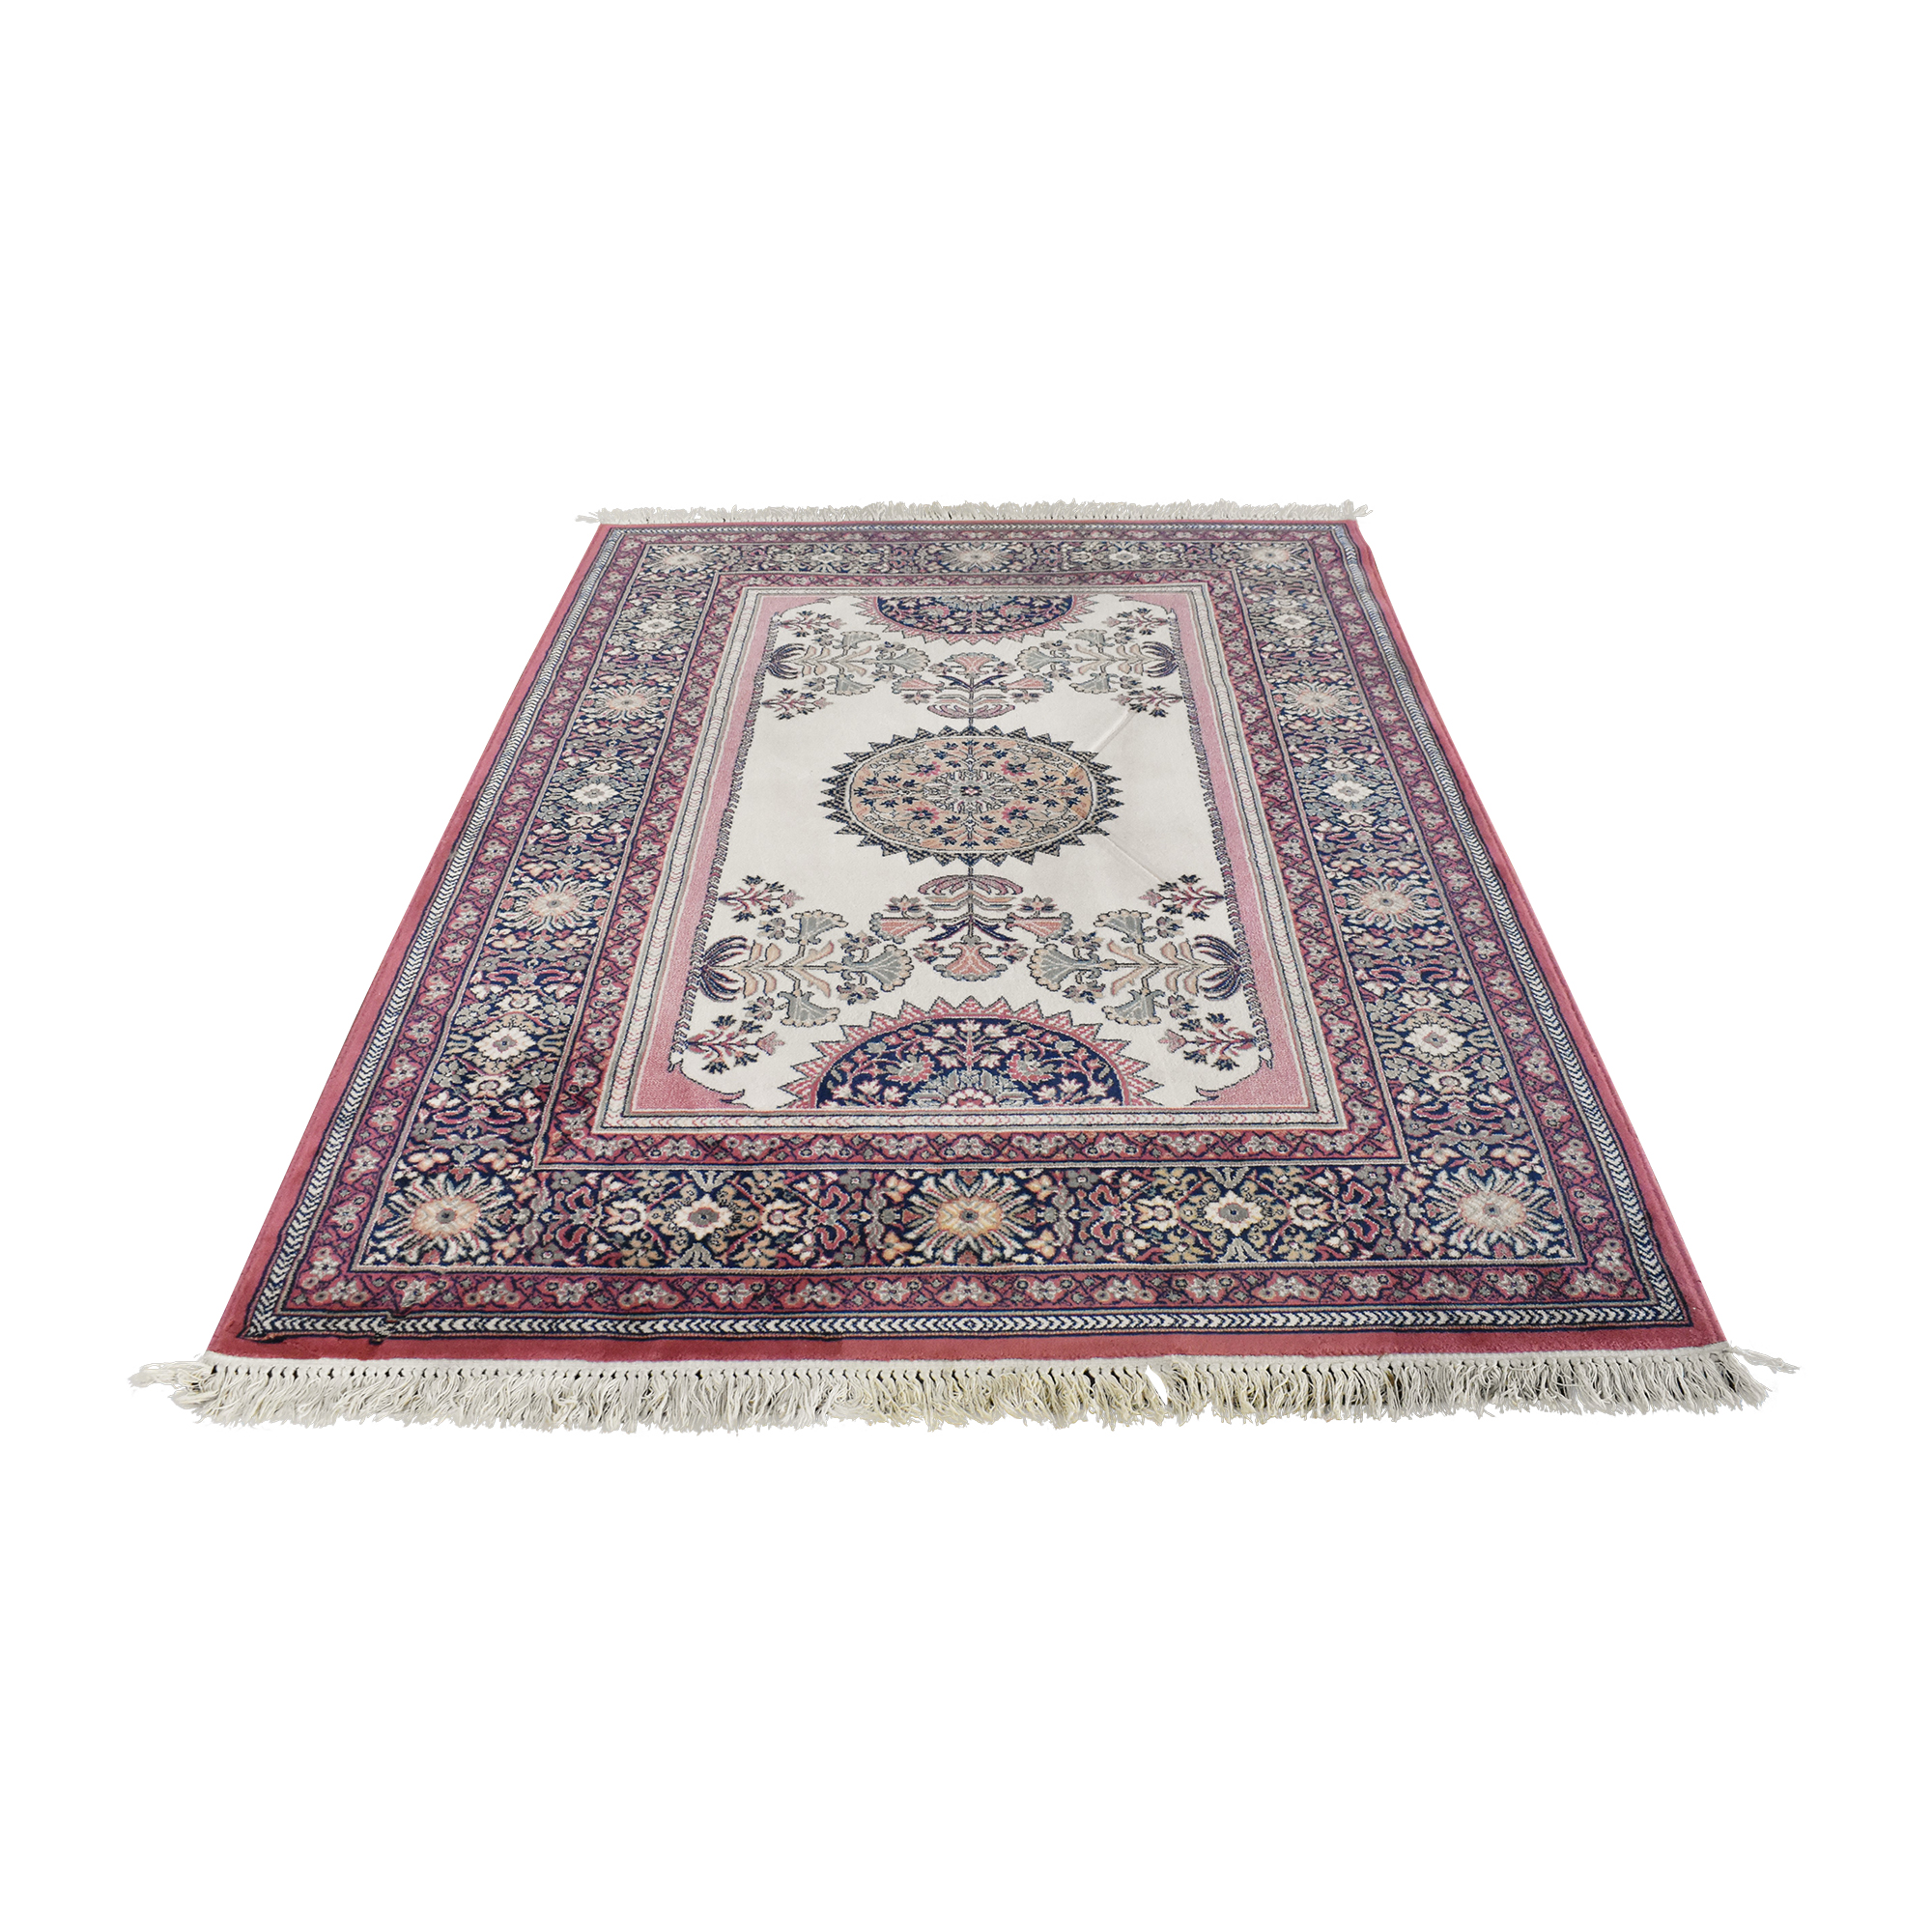 Couristan Couristan Kashimar Collection Area Rug multi